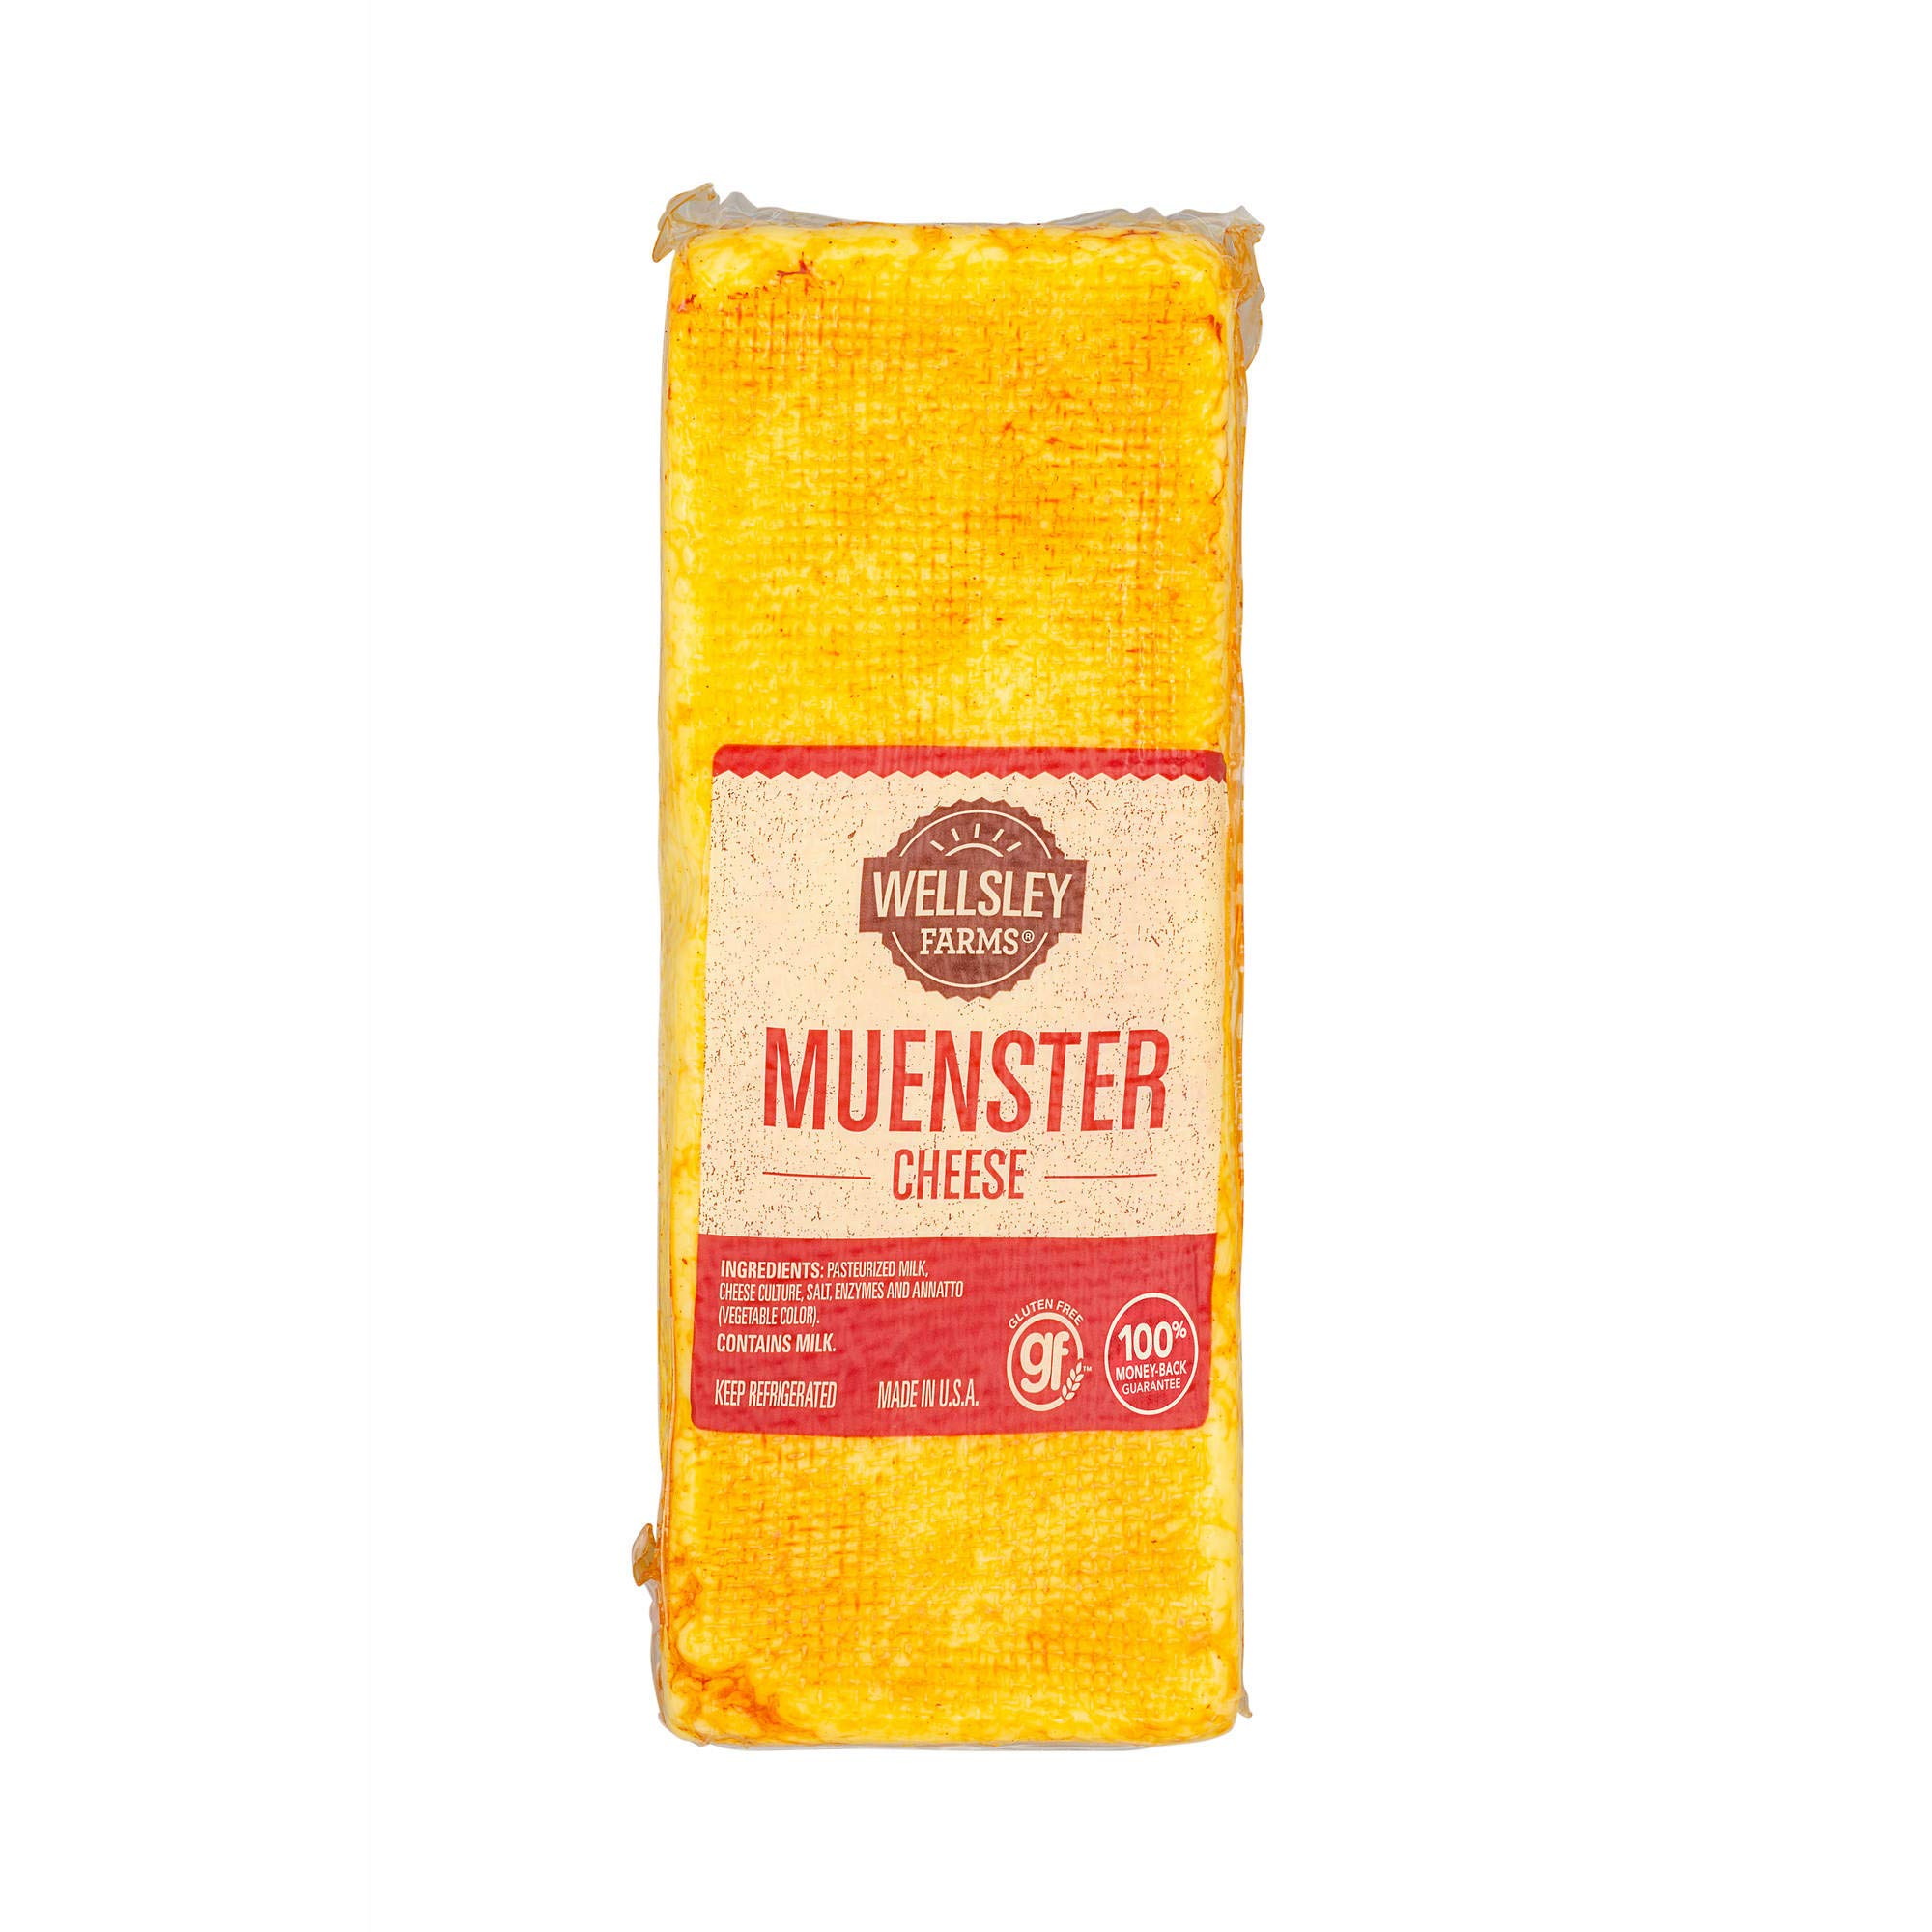 Muenster Cheese 1 ct